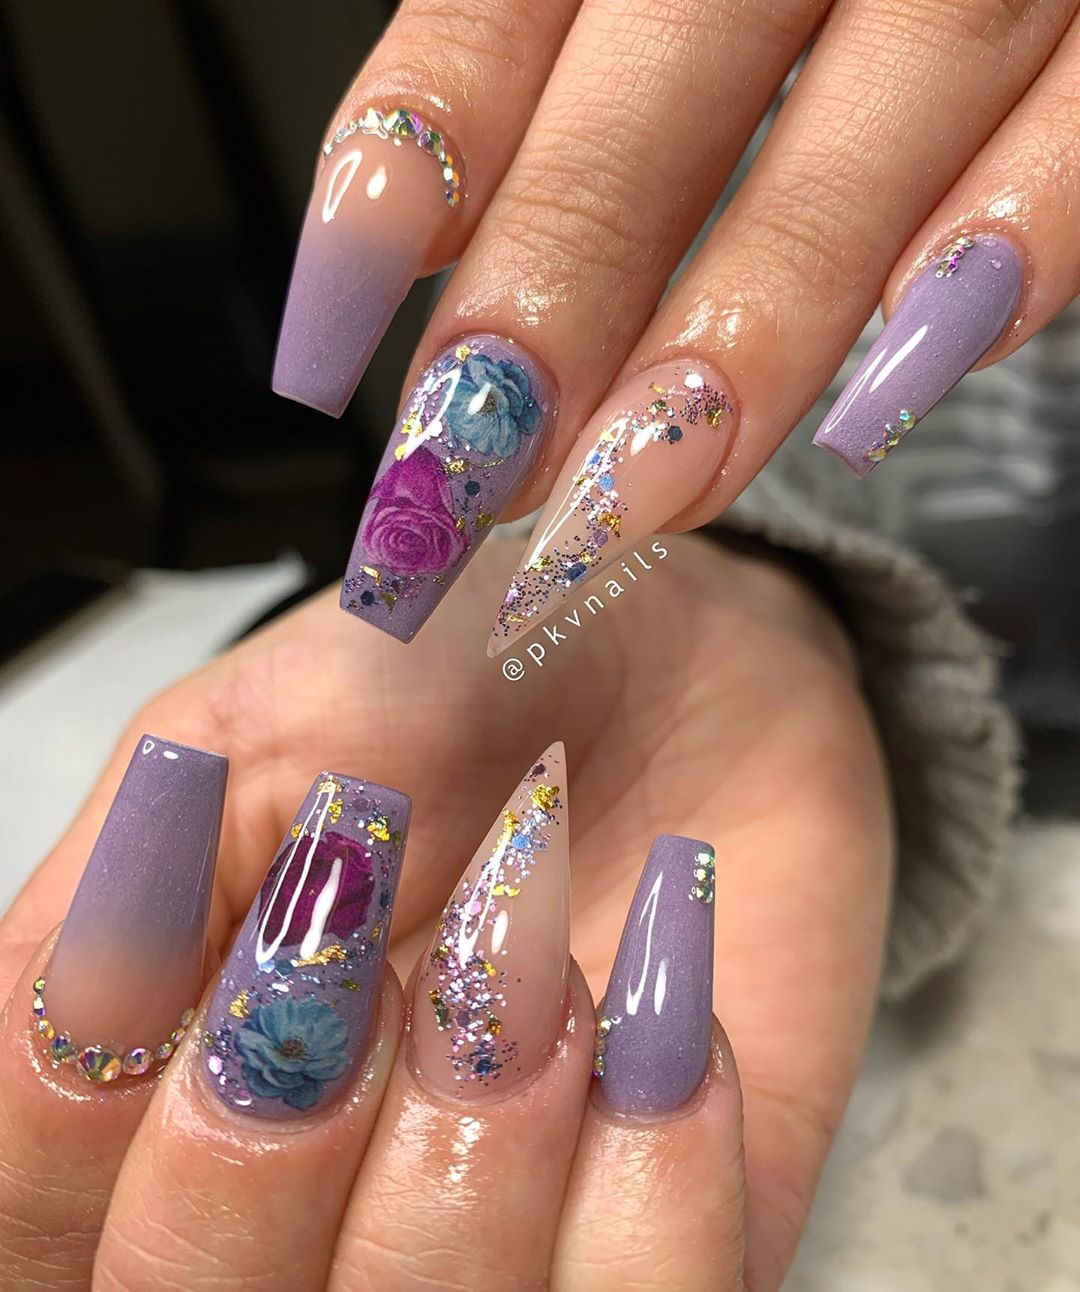 UPDATED: 30 Dazzling Rhinestone Nails for 2020 (August 2020)